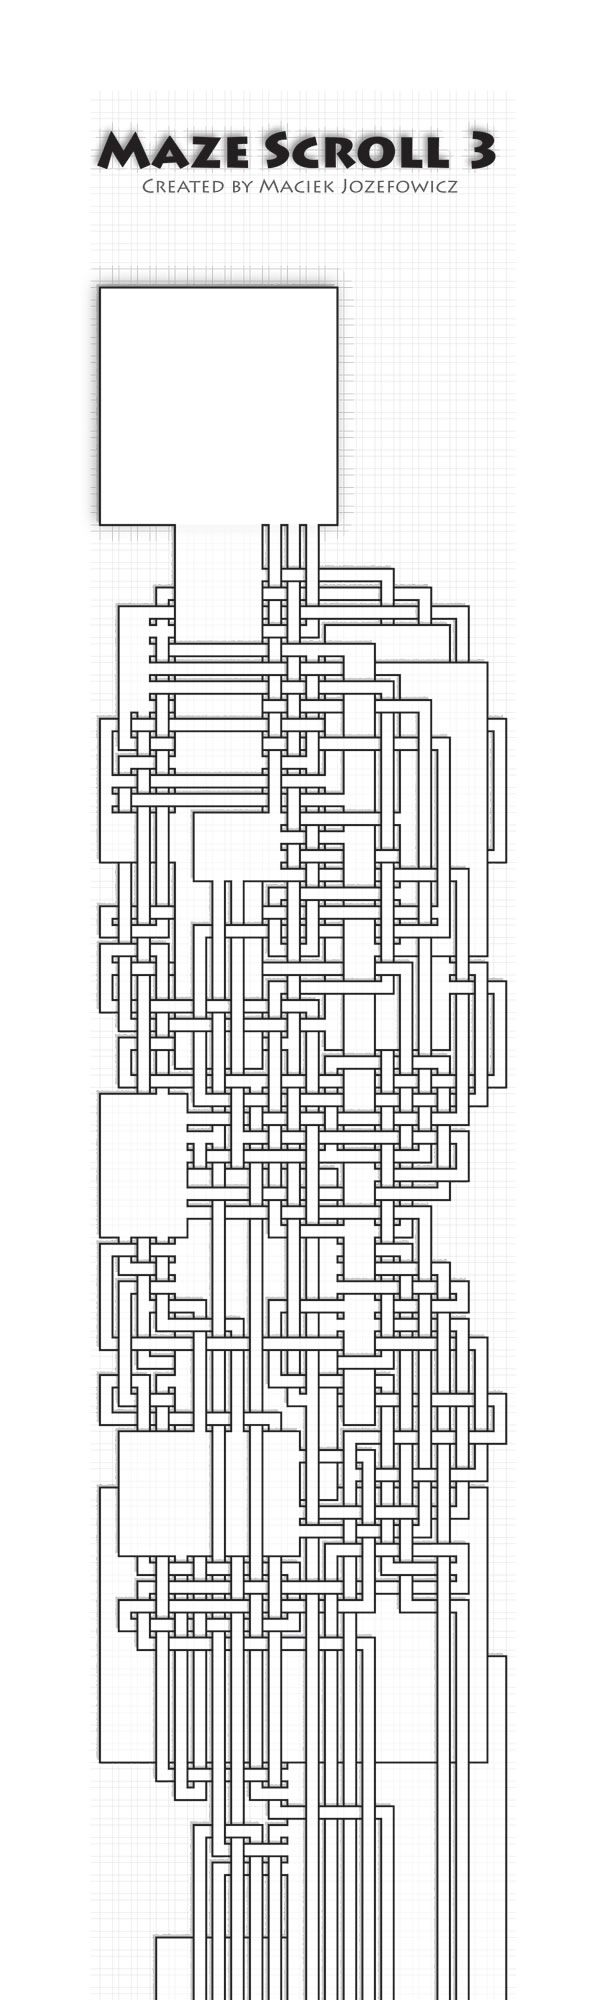 Maze Scroll 3 (maze puzzle in the form of the scroll)